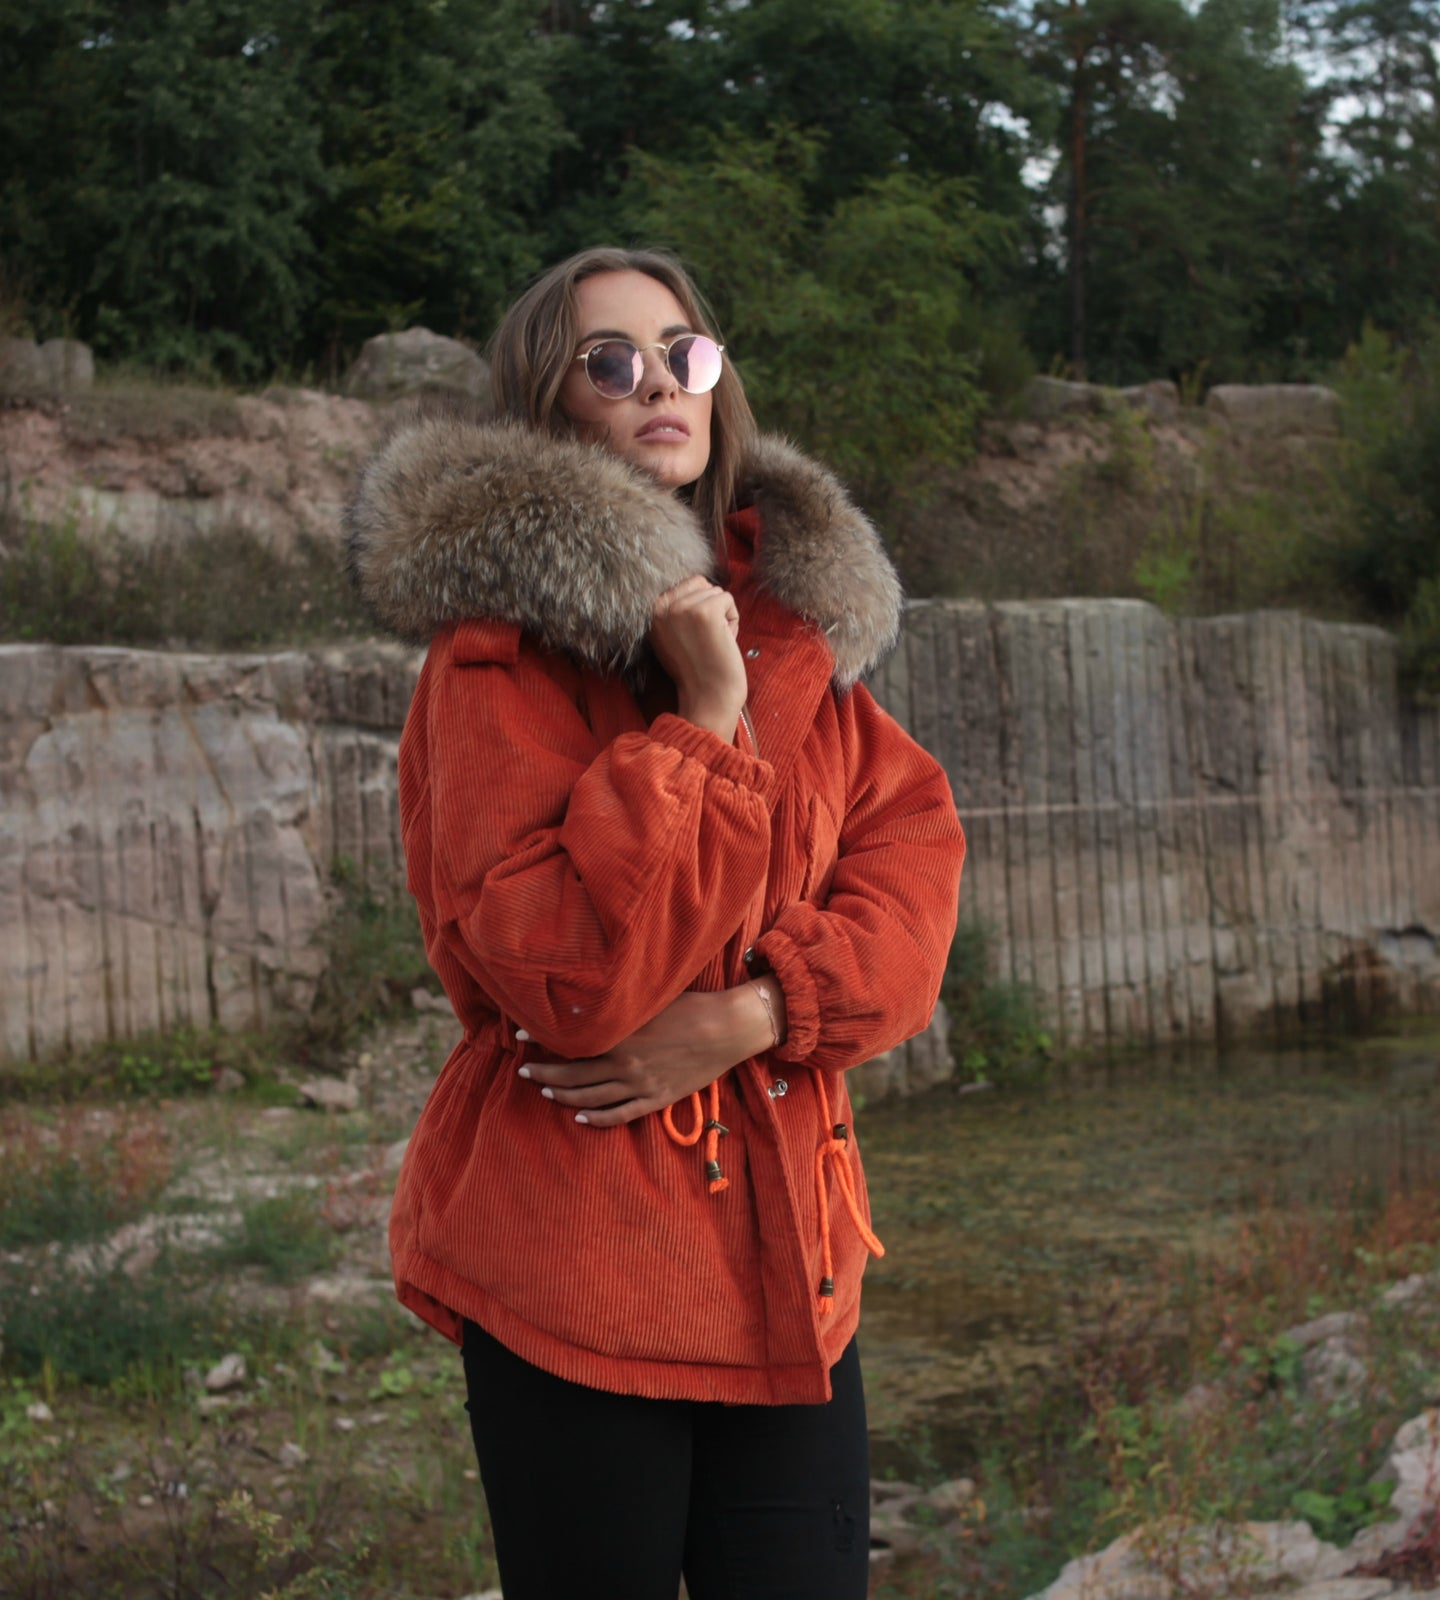 Cord Echt-Pelz Jacke in Orange